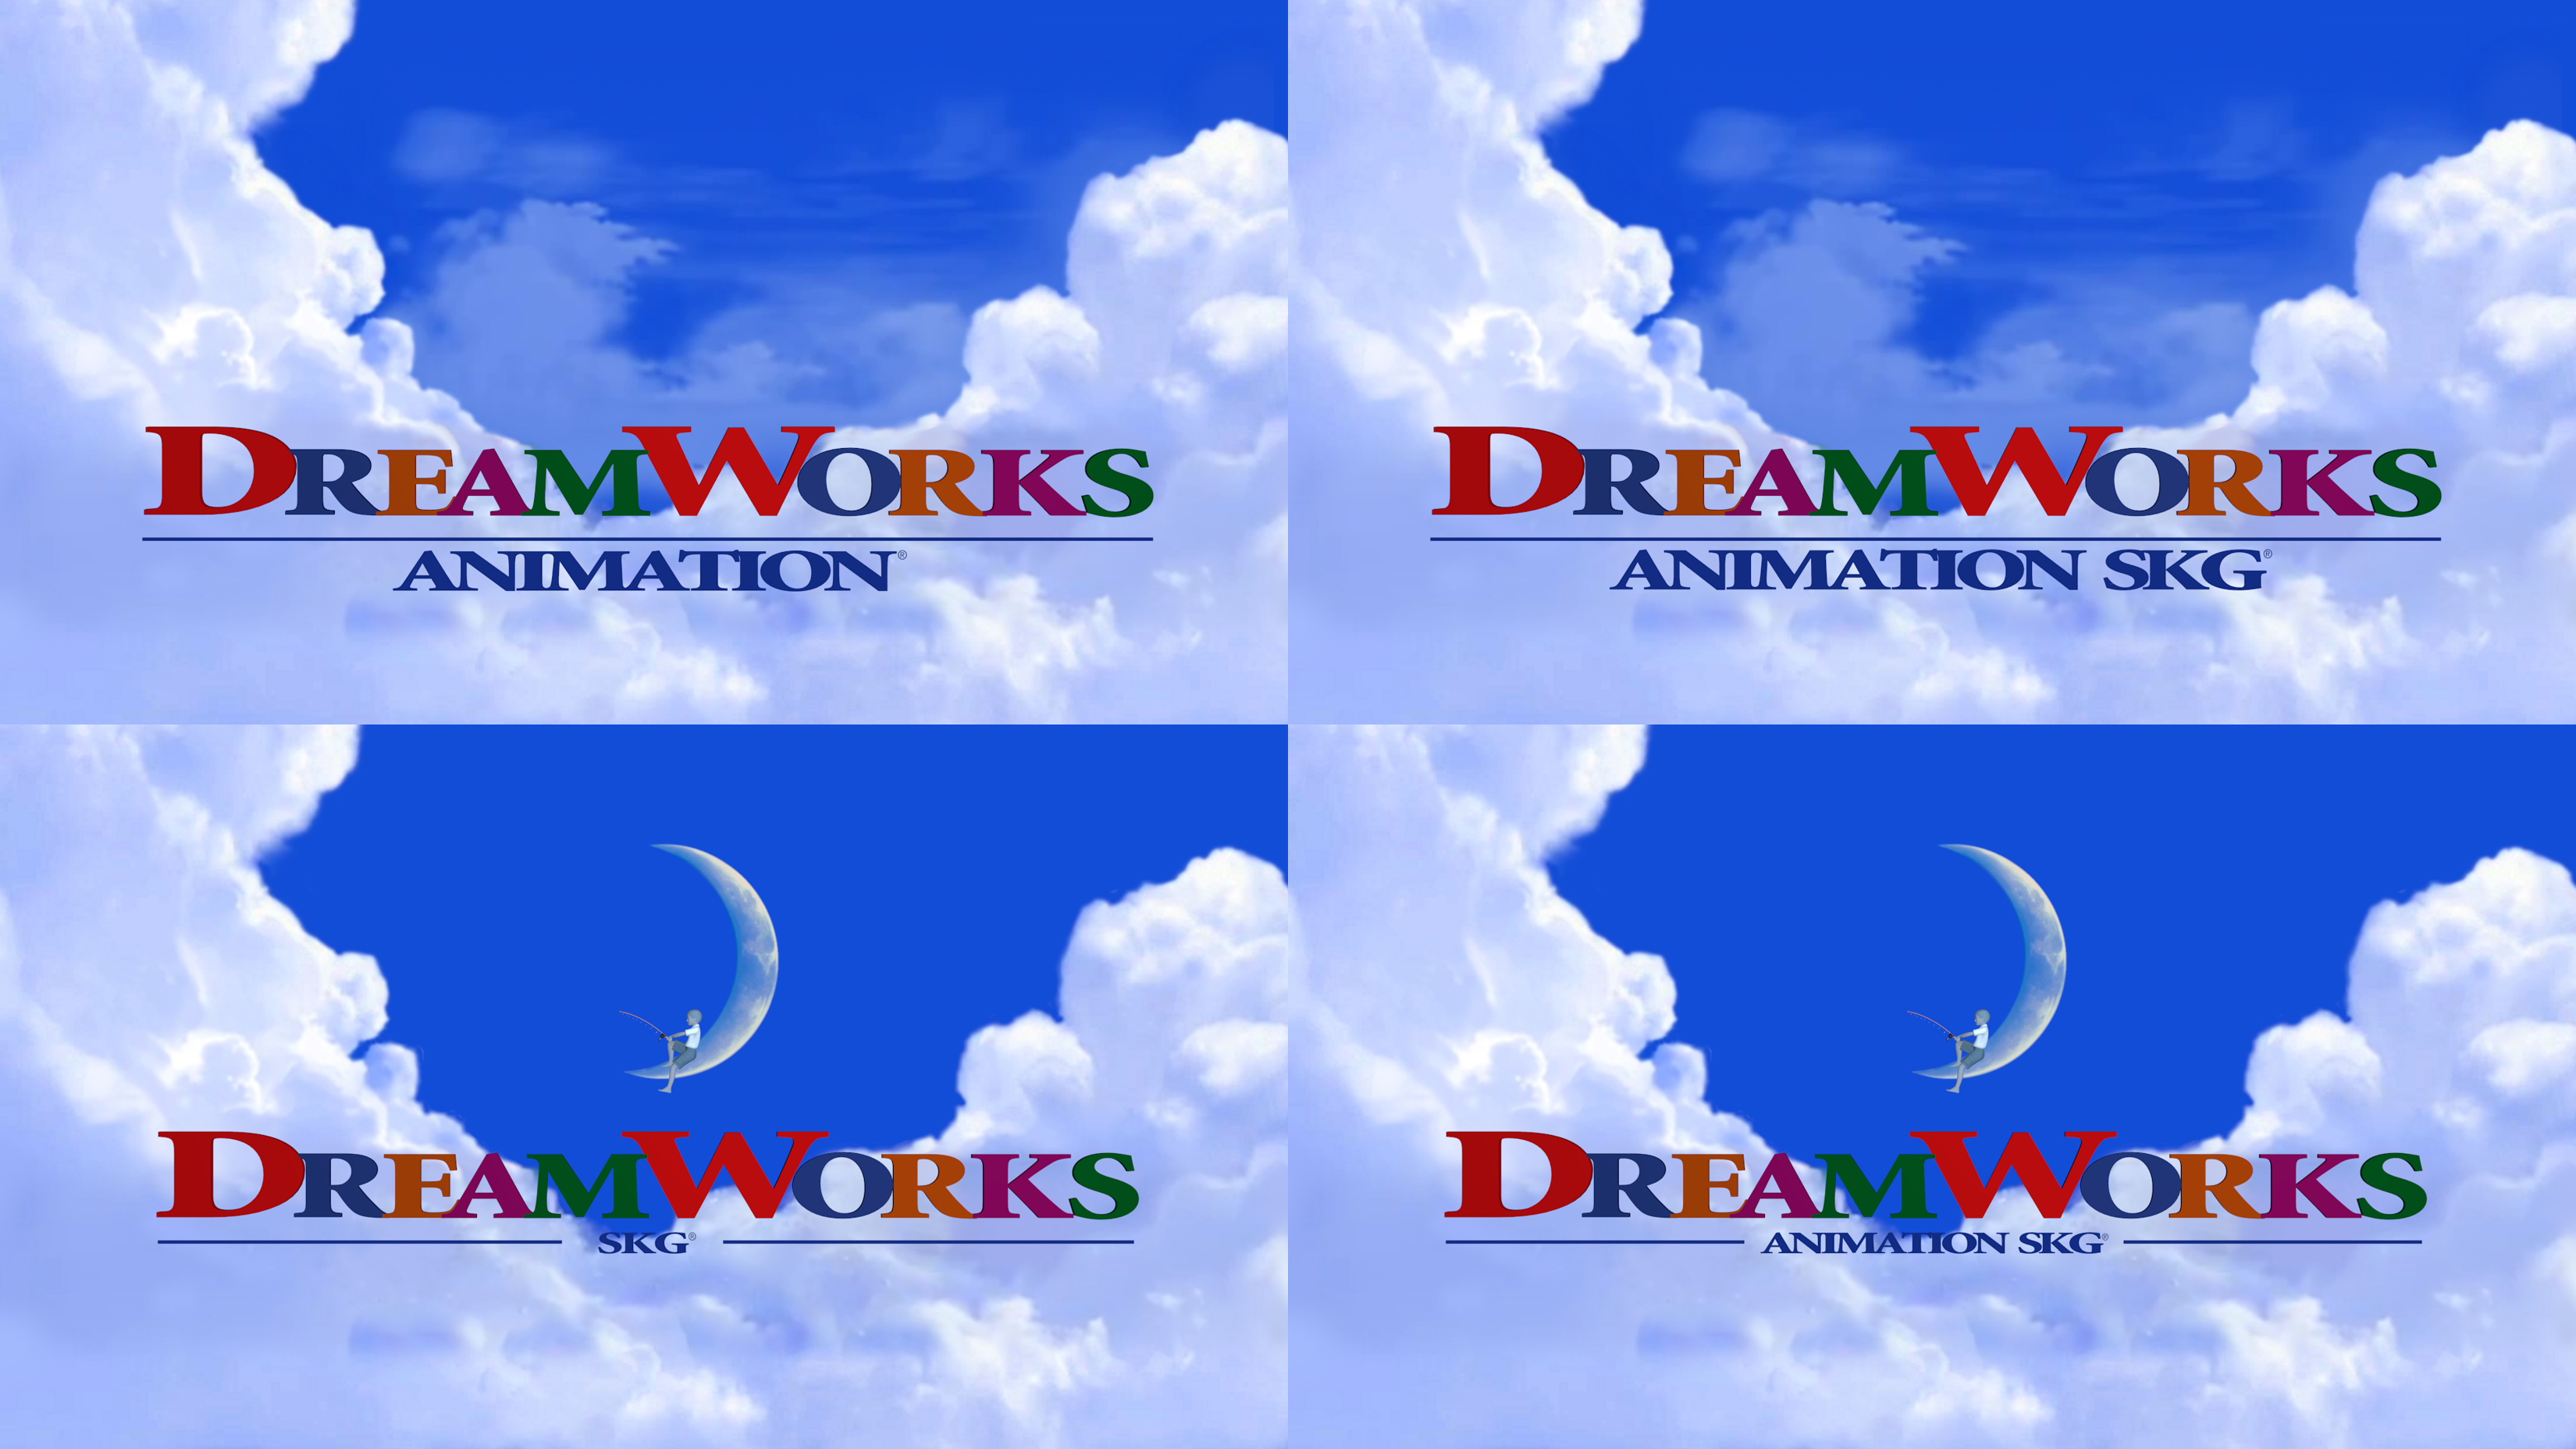 dreamworks animation Dreamworks animation believes that great stories inspire great possibilities striving for the best storytelling imaginable, dreamworks rewrites the rules of what's been done by encouraging its team and fans alike to imagine something different more film dreamworks animation believes that great stories inspire great.